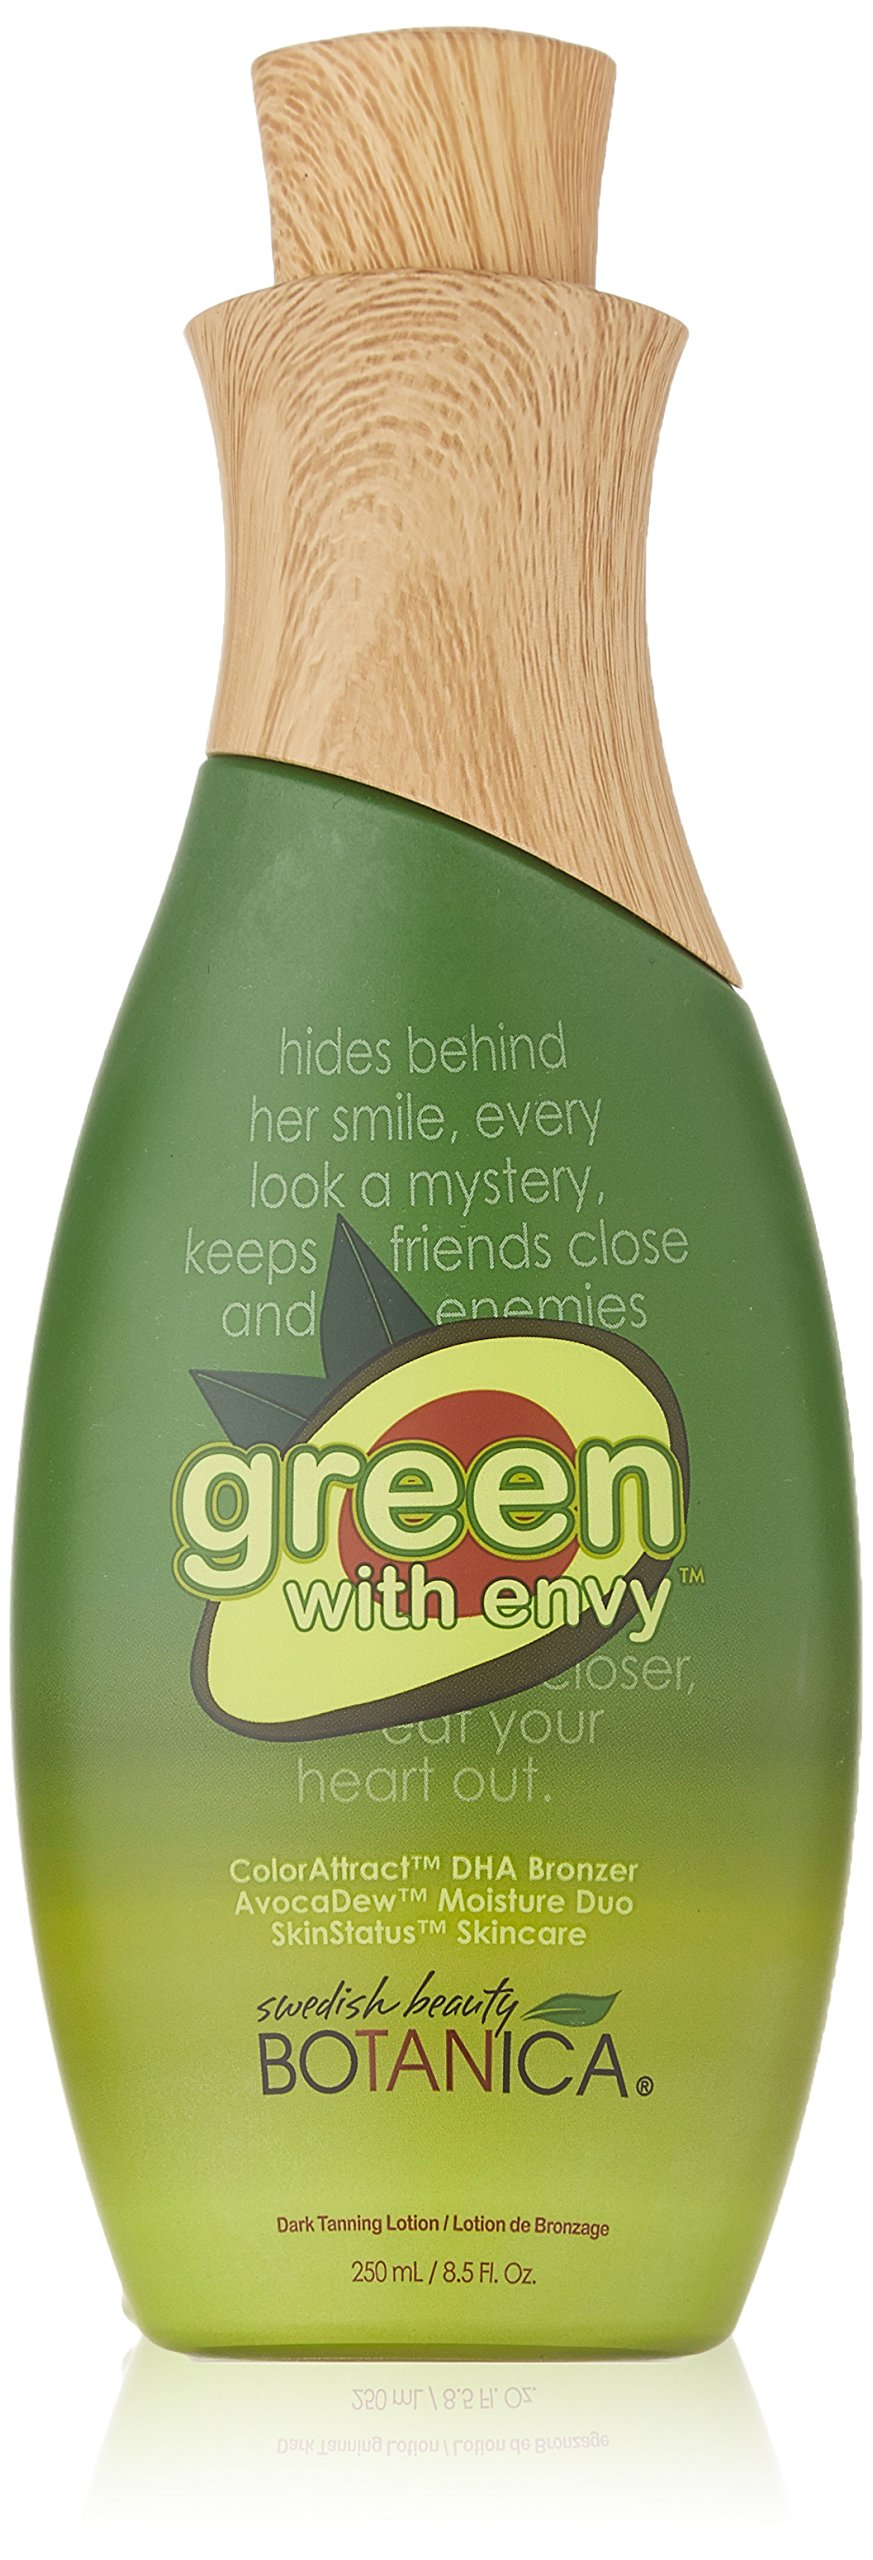 Swedish Beauty DHA Bronzer Tanning Lotion, Green with Envy, 8.5 Fluid Ounce